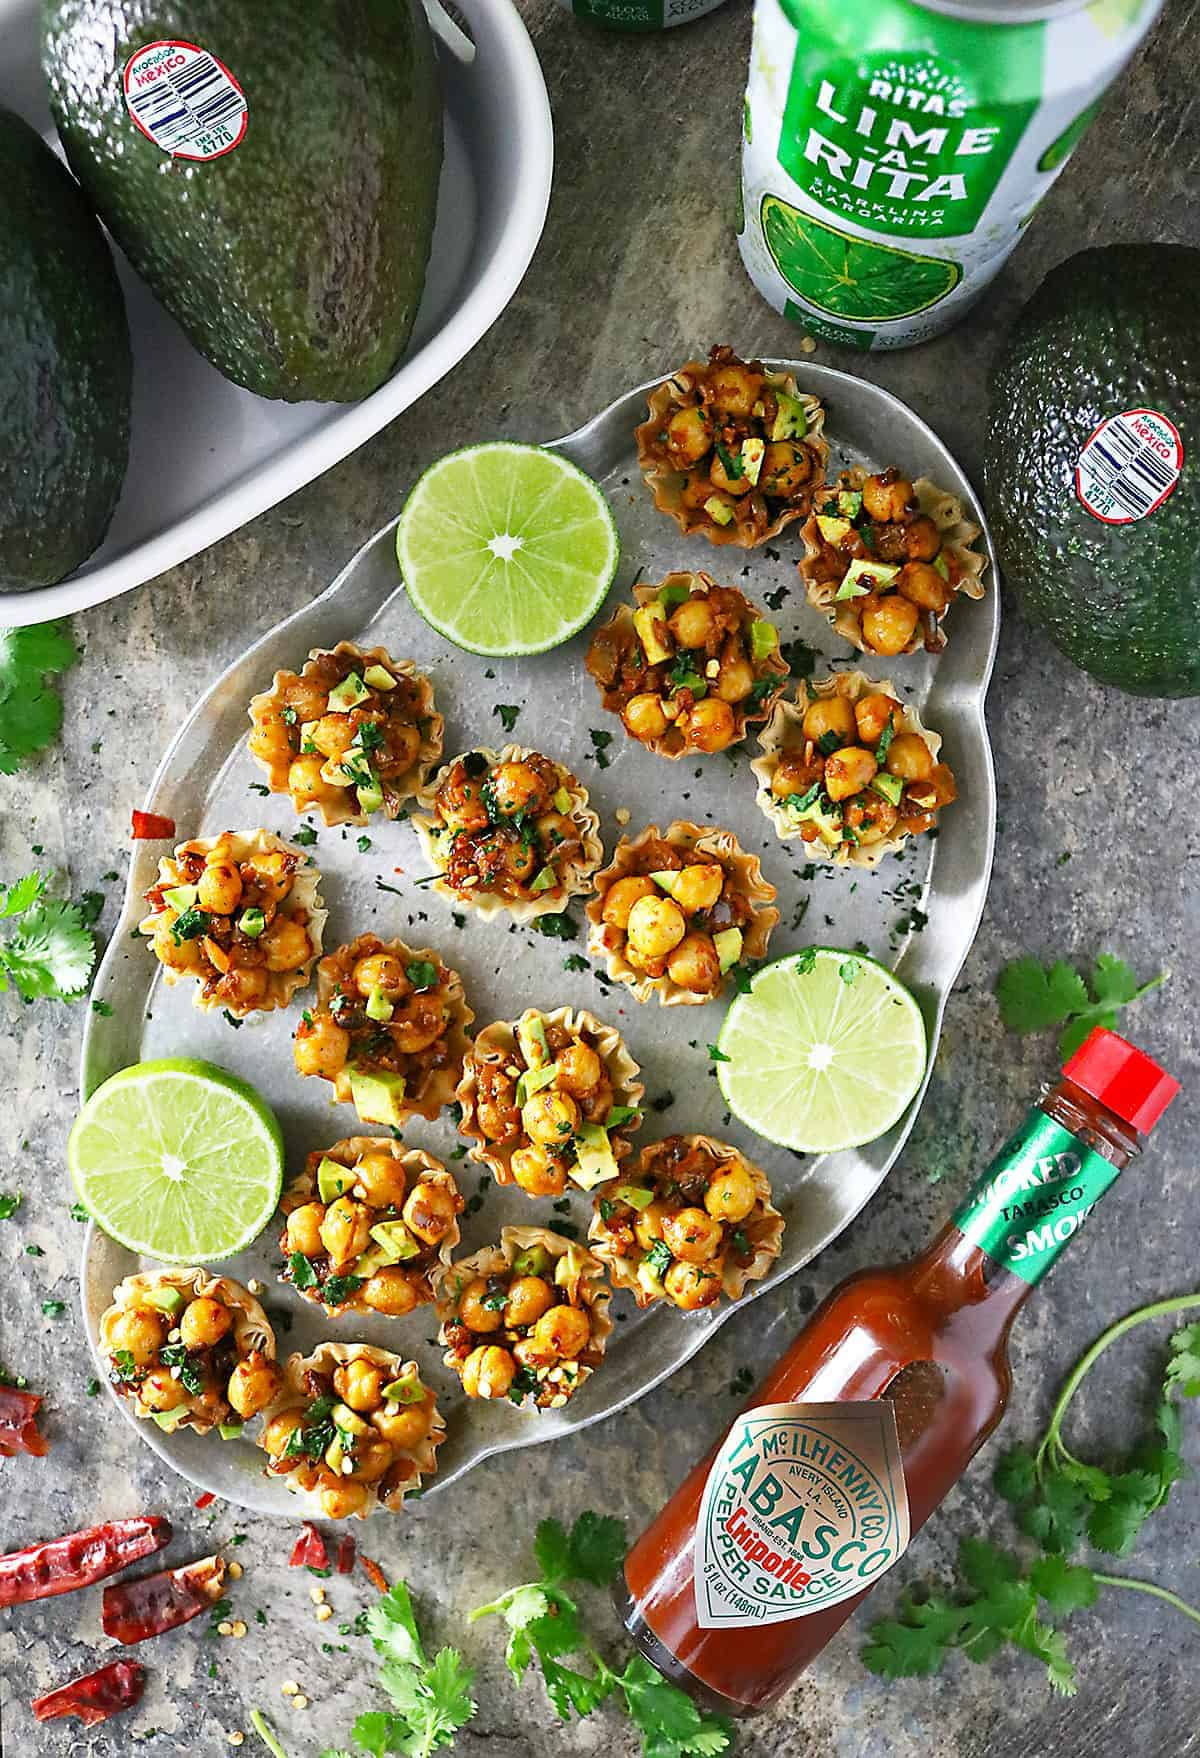 Chickpea Cups made with Avocados From Mexico For Big Game Snacking